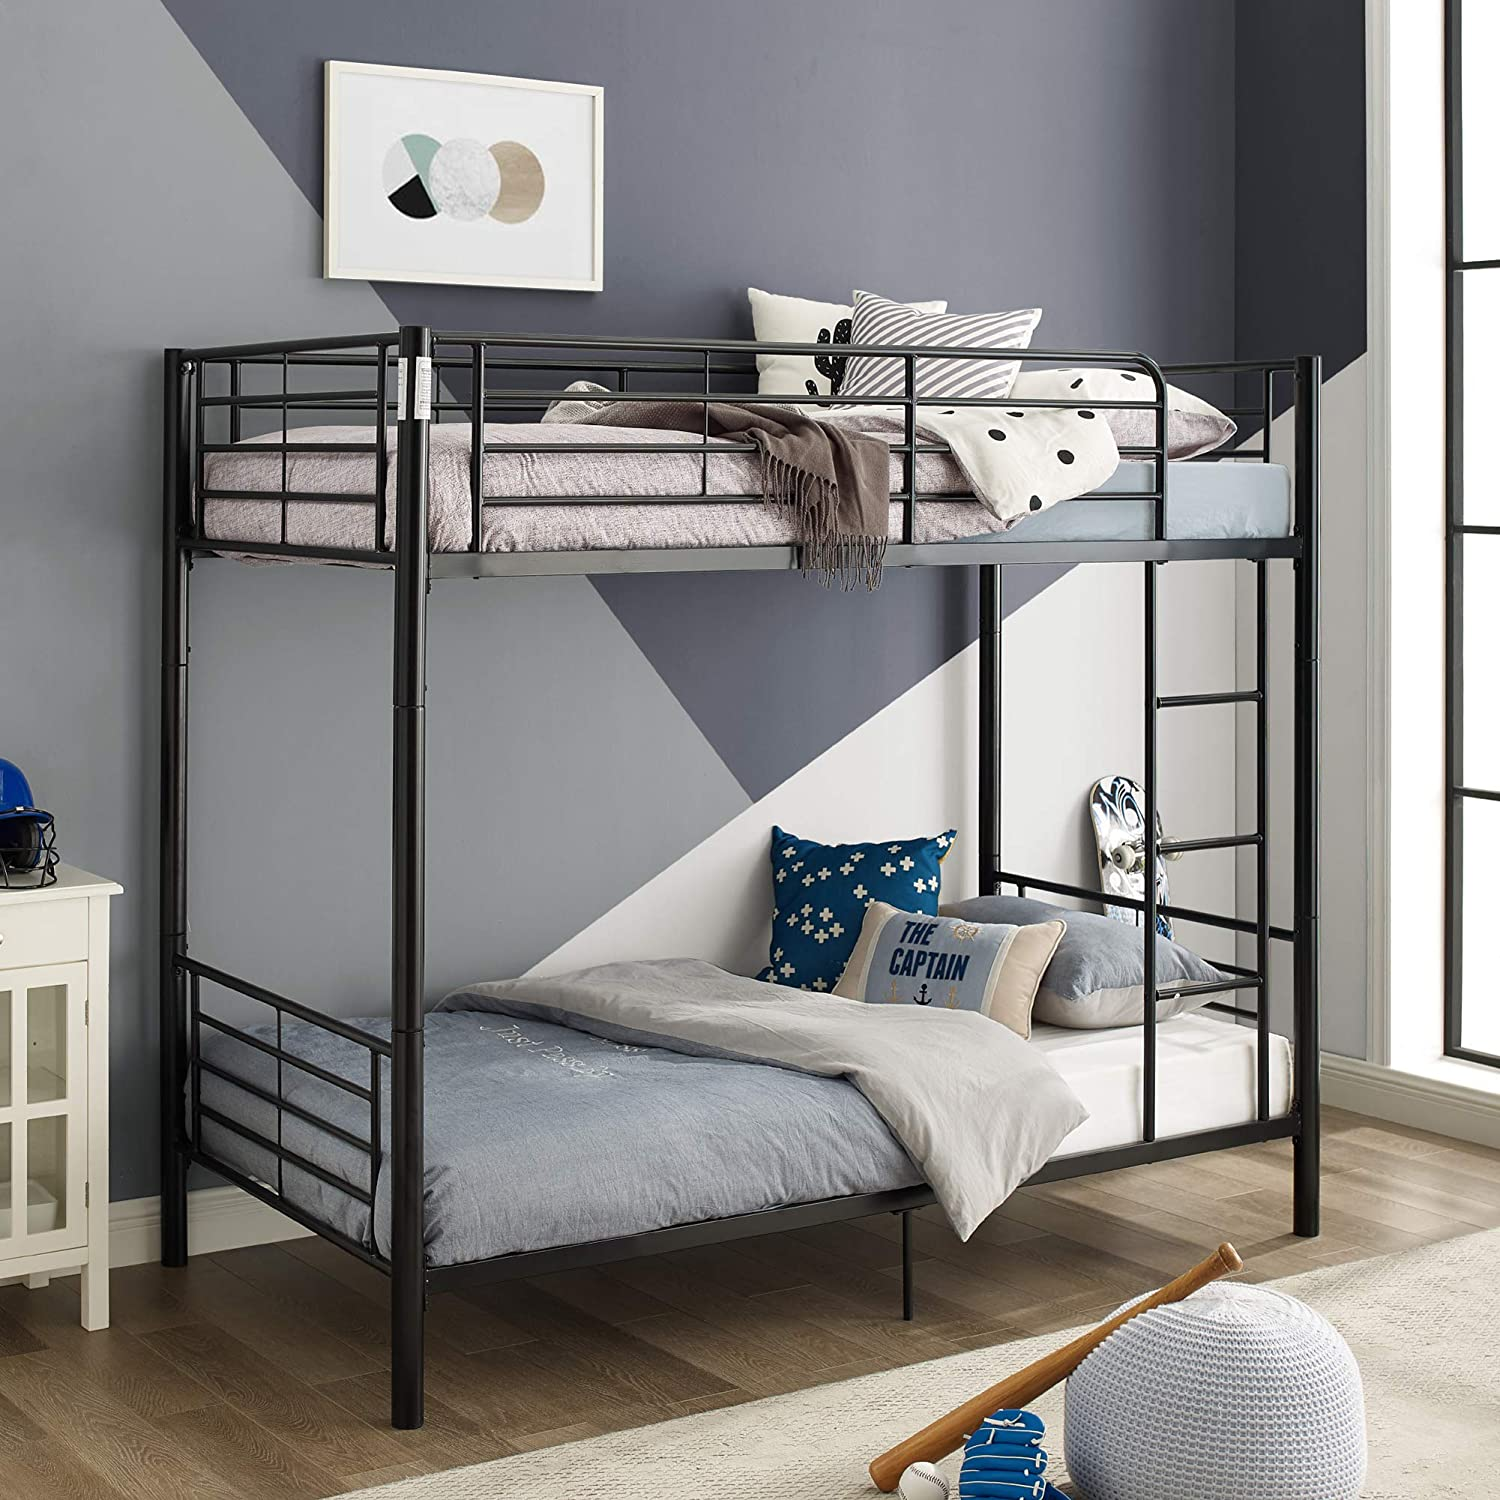 The 10 Best Bunk Beds For Kids For 2021 Online Mattress Review